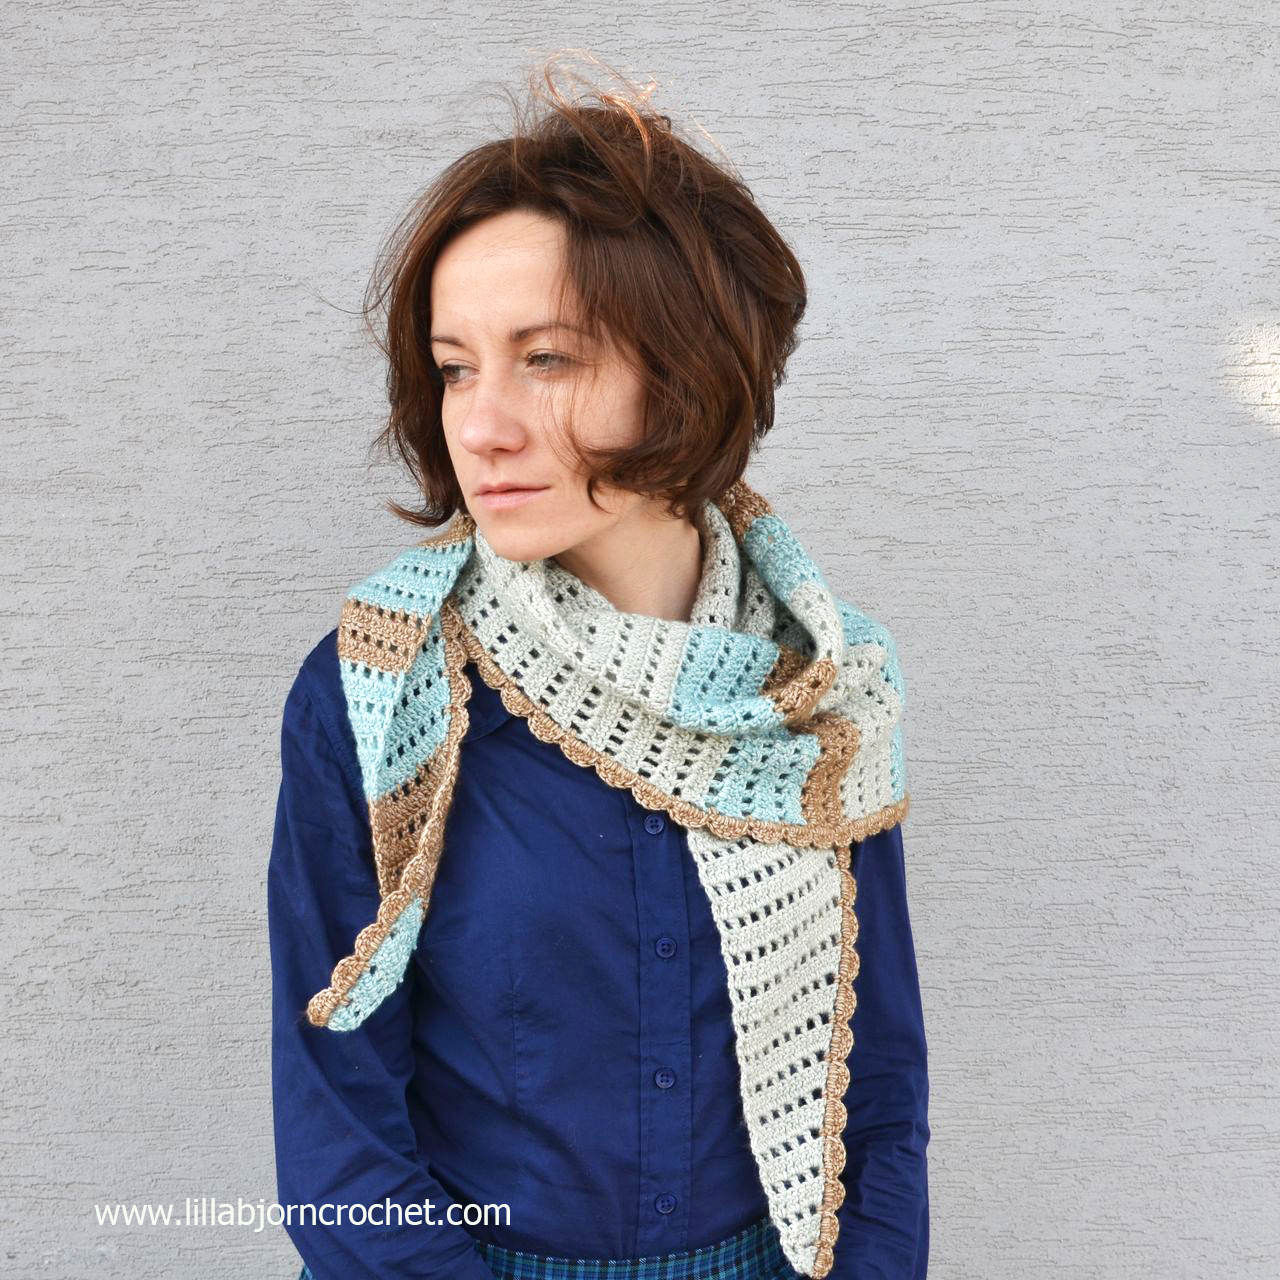 Windy Morning shawlette FREE crochet pattern by www.lillabjorncrochet.com